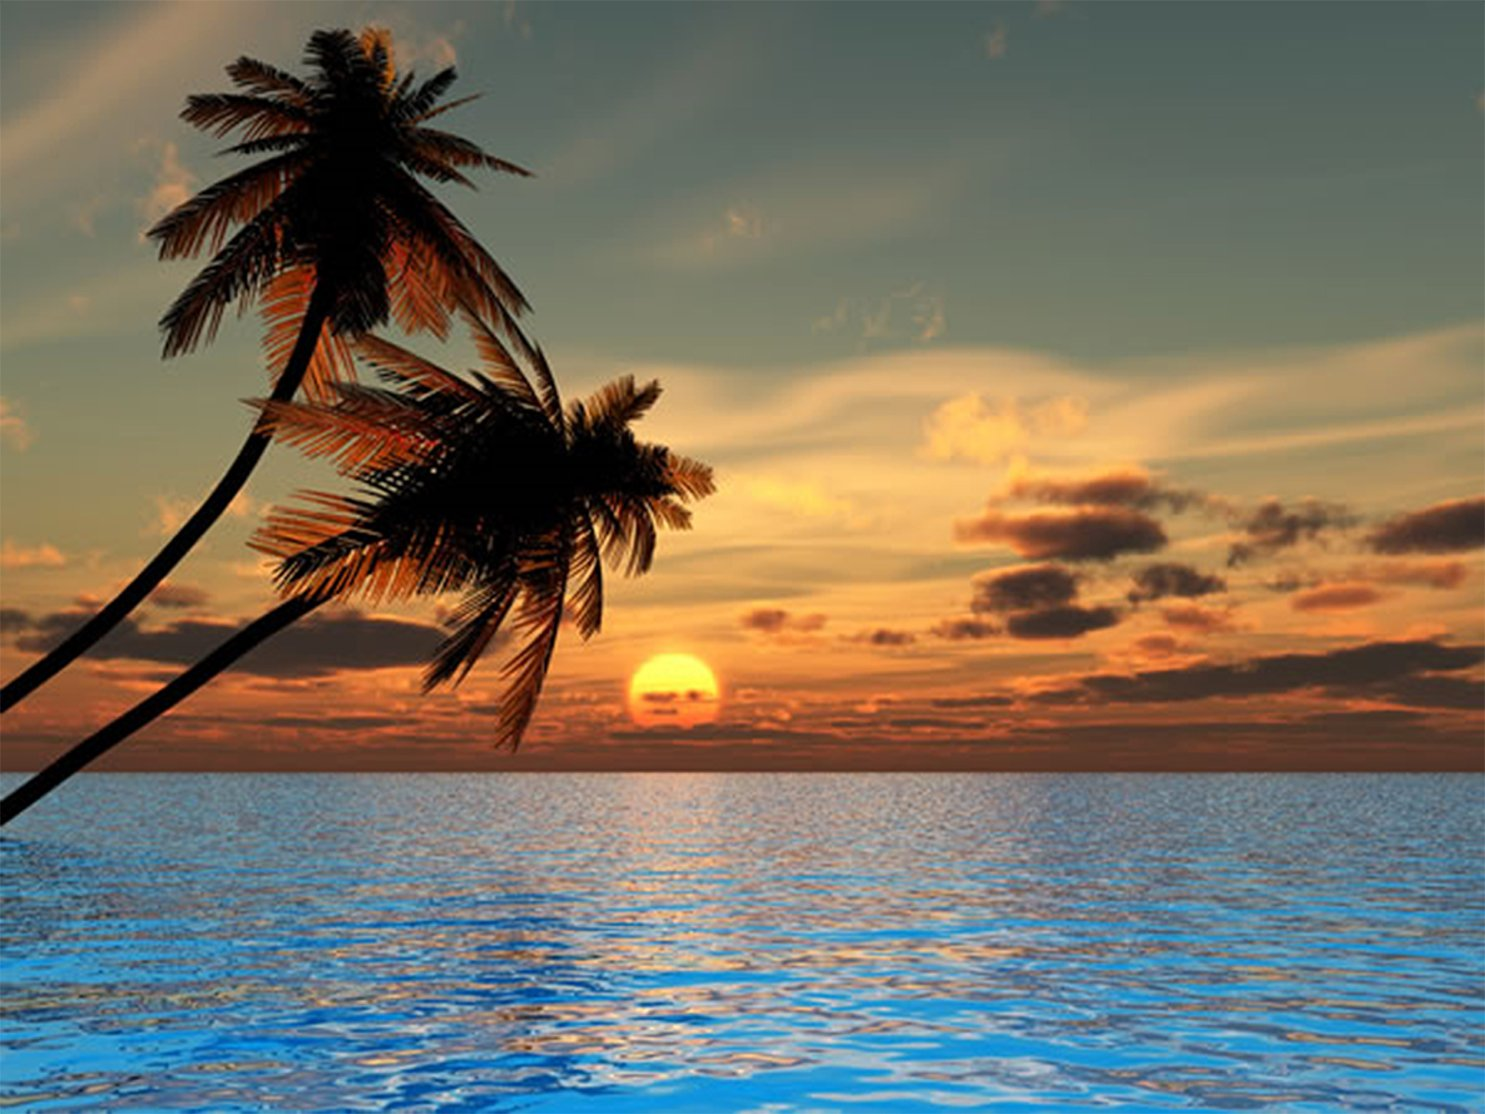 Sunset Beach Wallpapers Download Wallpaper DaWallpaperz 1485x1114